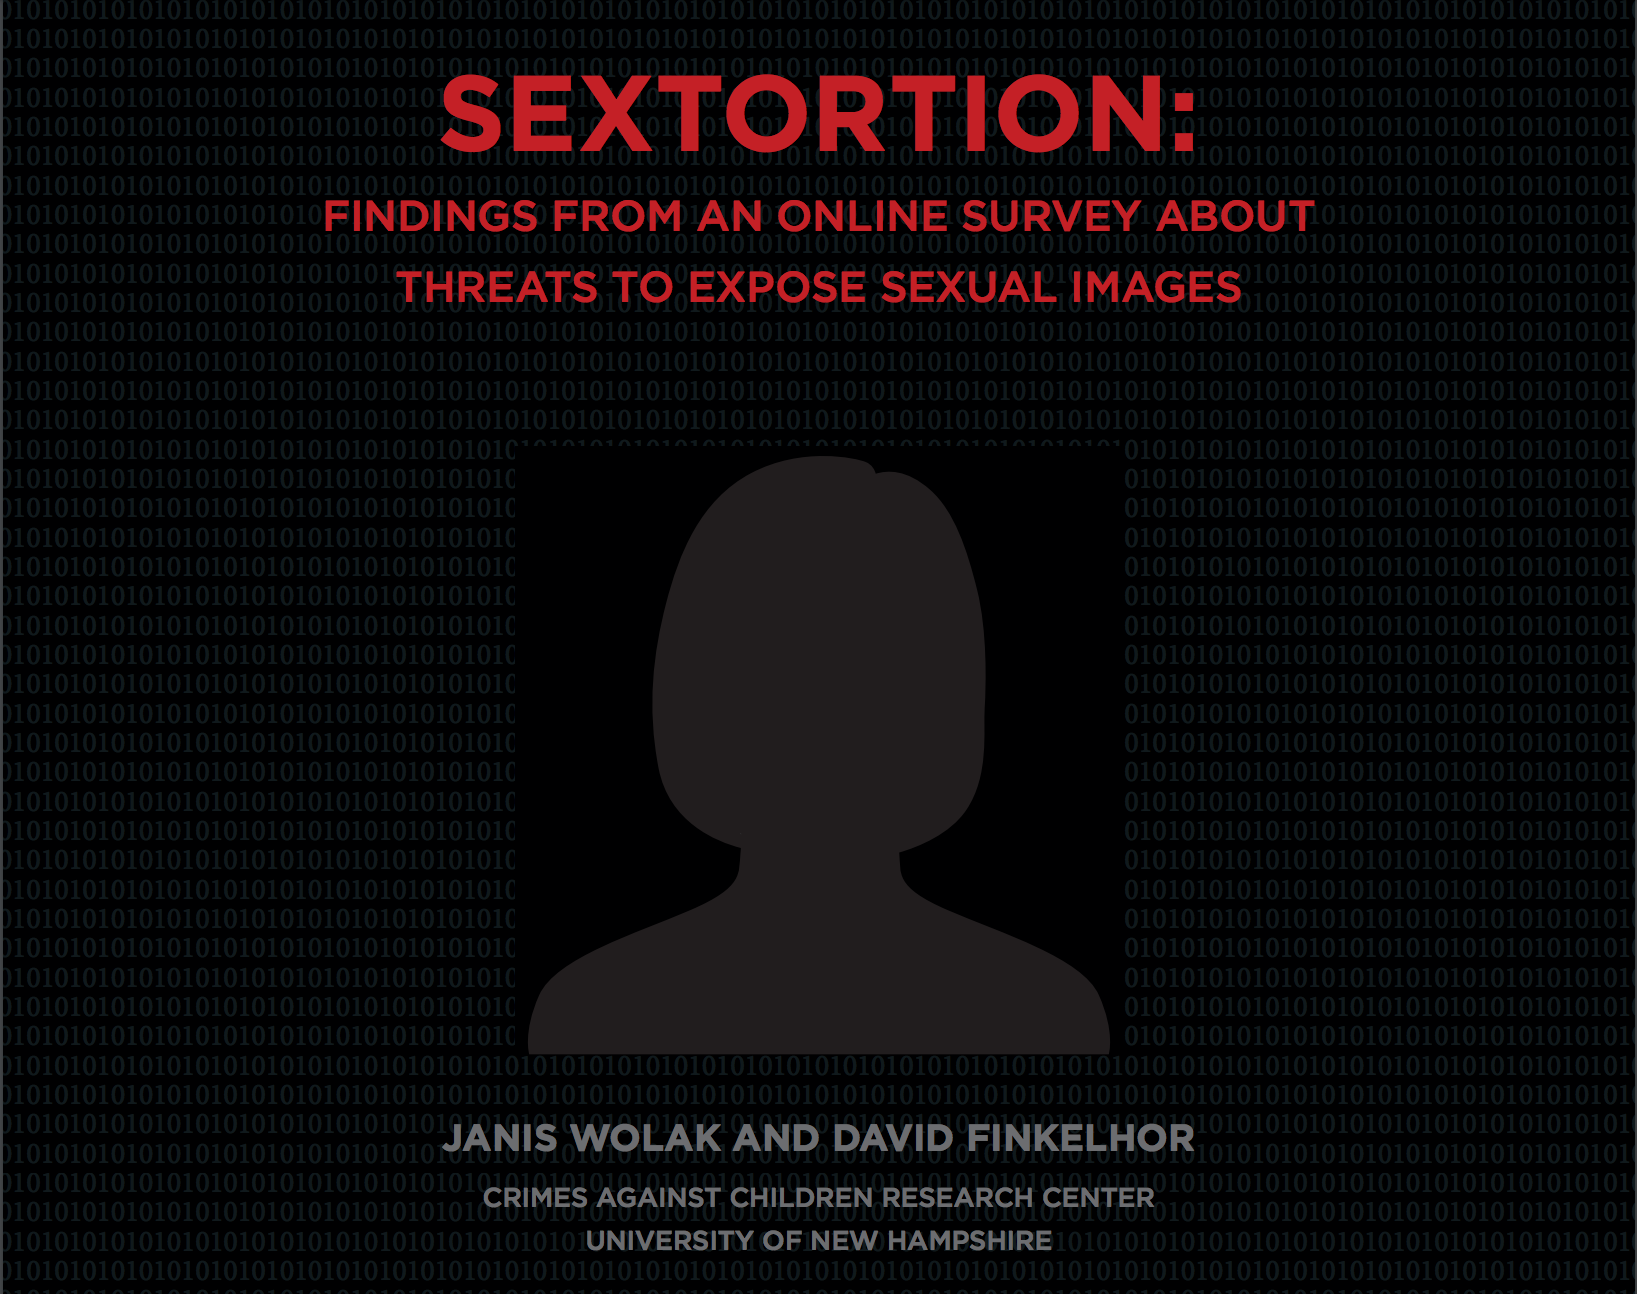 facebook sextortion essay It was organized by members of the ntnu digital forensics group: among submitted papers often referred to as 'sextortion' or 'webcam blackmailing.